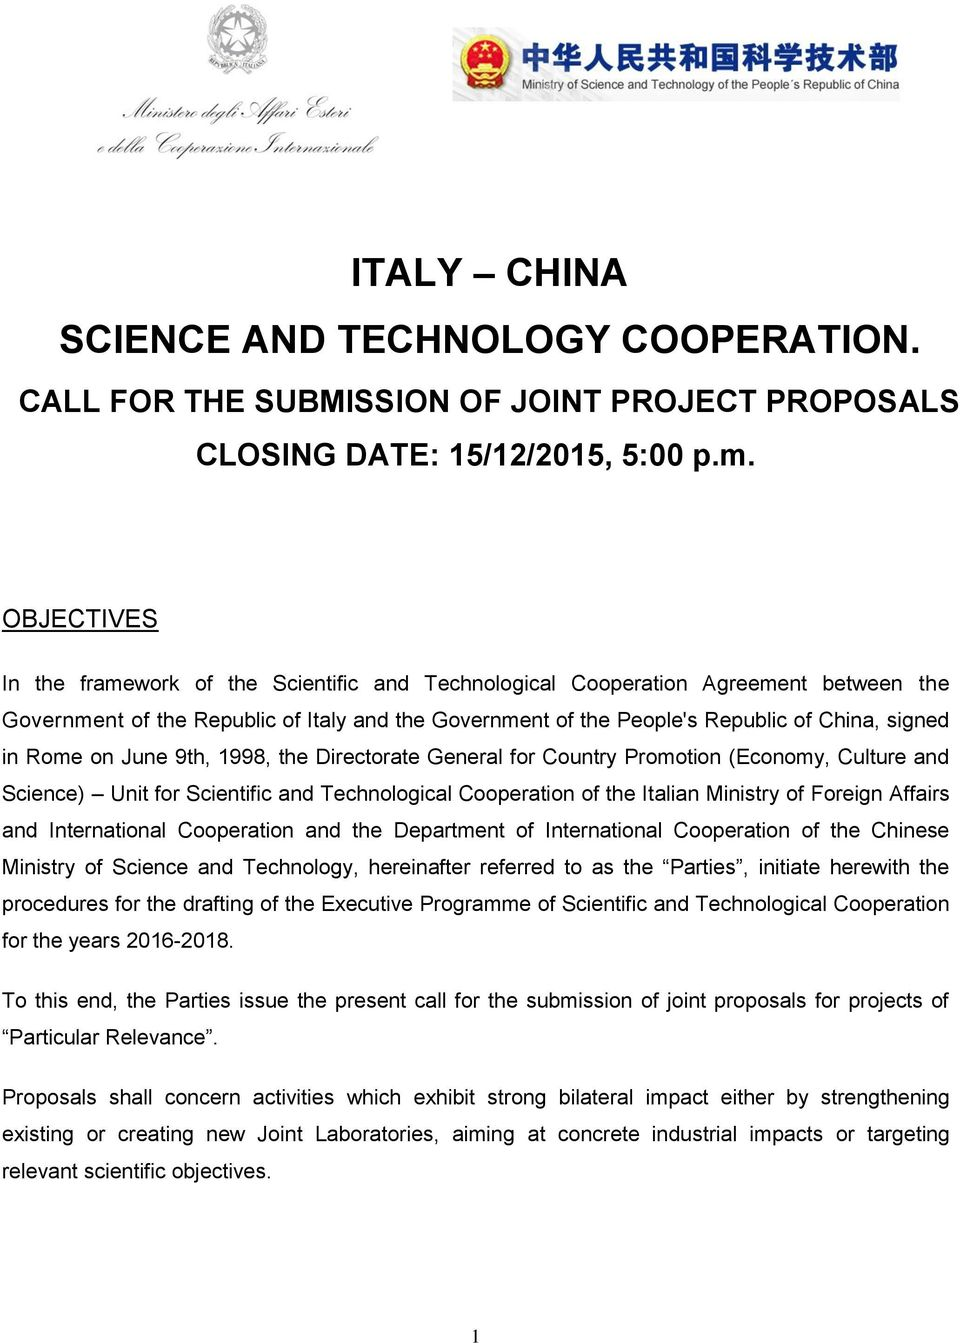 Rome on June 9th, 1998, the Directorate General for Country Promotion (Economy, Culture and Science) Unit for Scientific and Technological Cooperation of the Italian Ministry of Foreign Affairs and